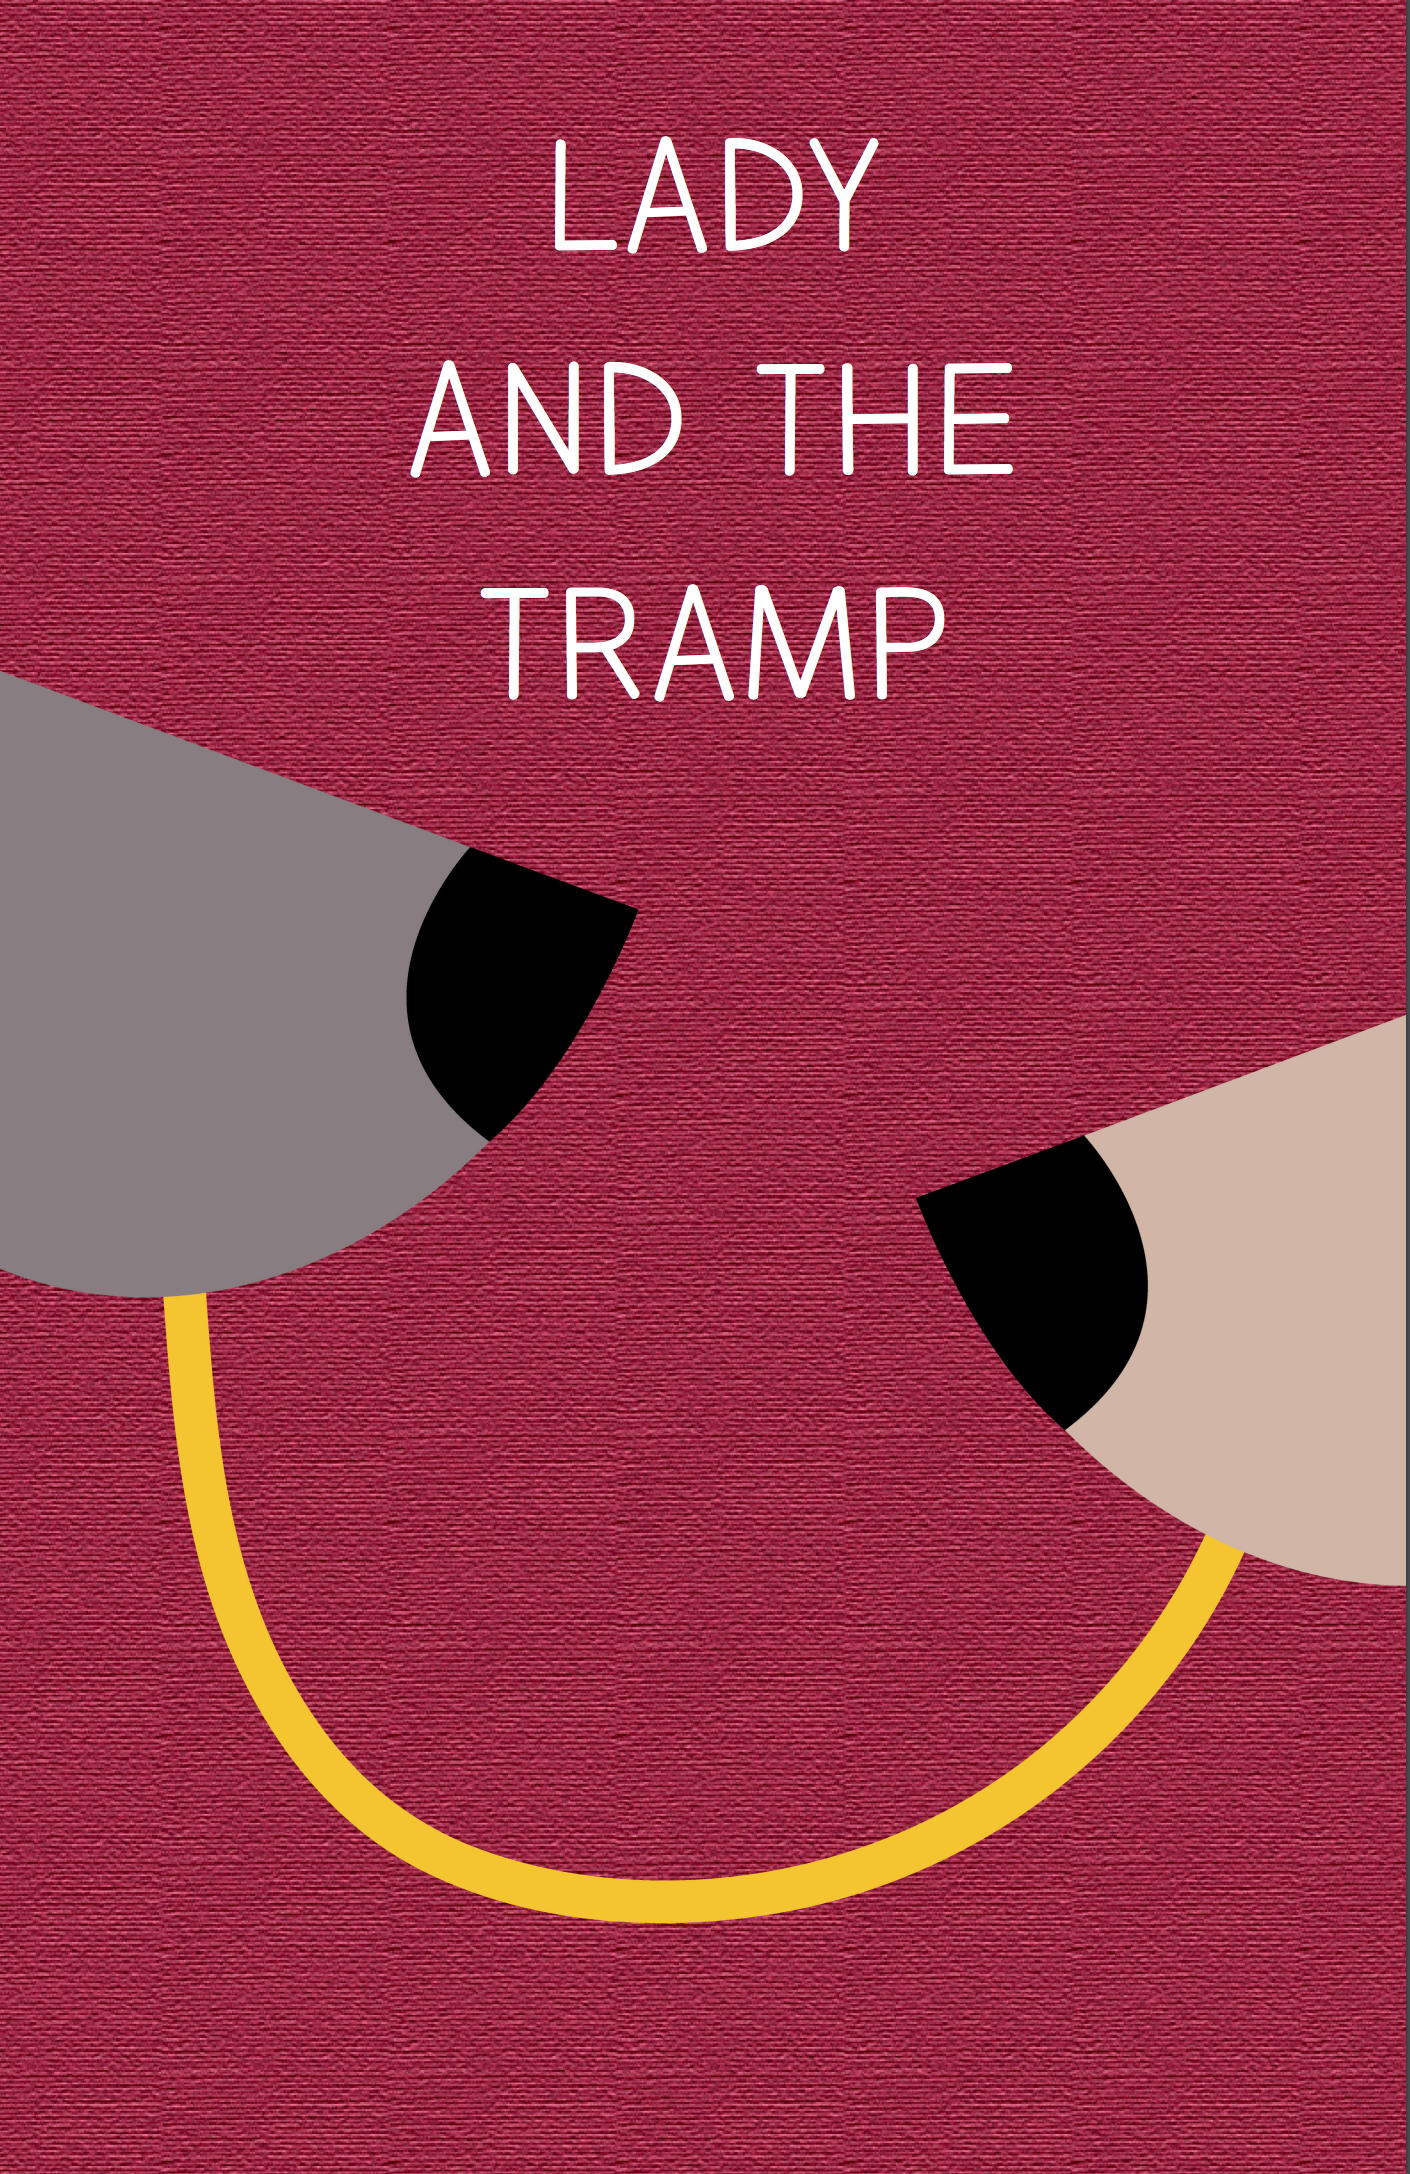 Alyssa's minimalist movie poster for Lady and the Tramp